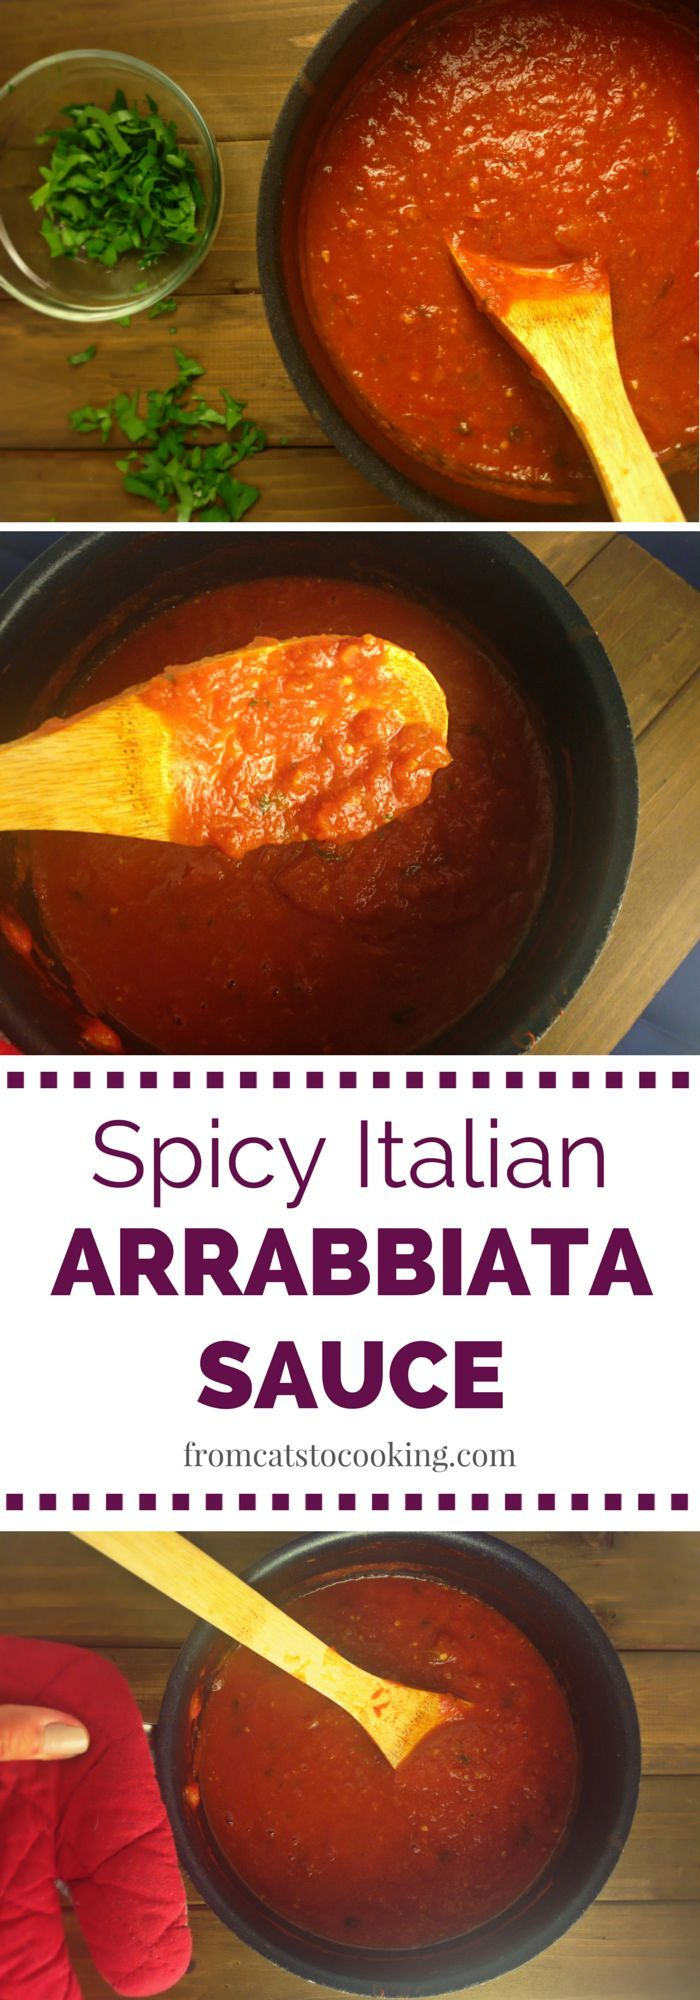 This Homemade Spicy Italian Arrabbiata Sauce recipe is super easy to make and extremely delicious. It's also gluten-free and free of any fillers and junk ingredients. | fromcatstocooking.com